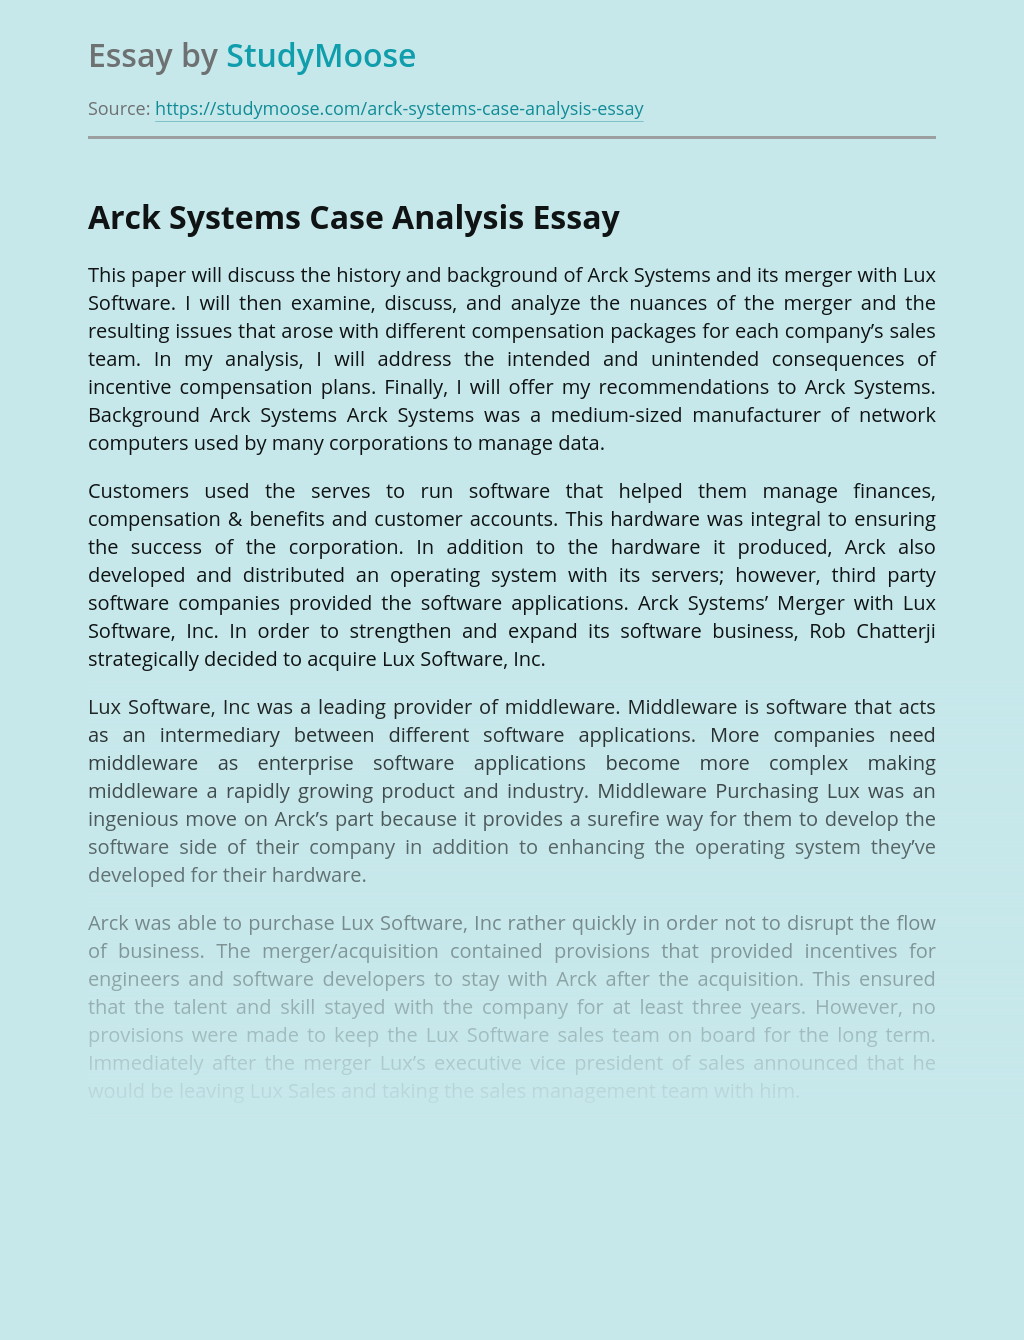 Arck Systems Case Analysis